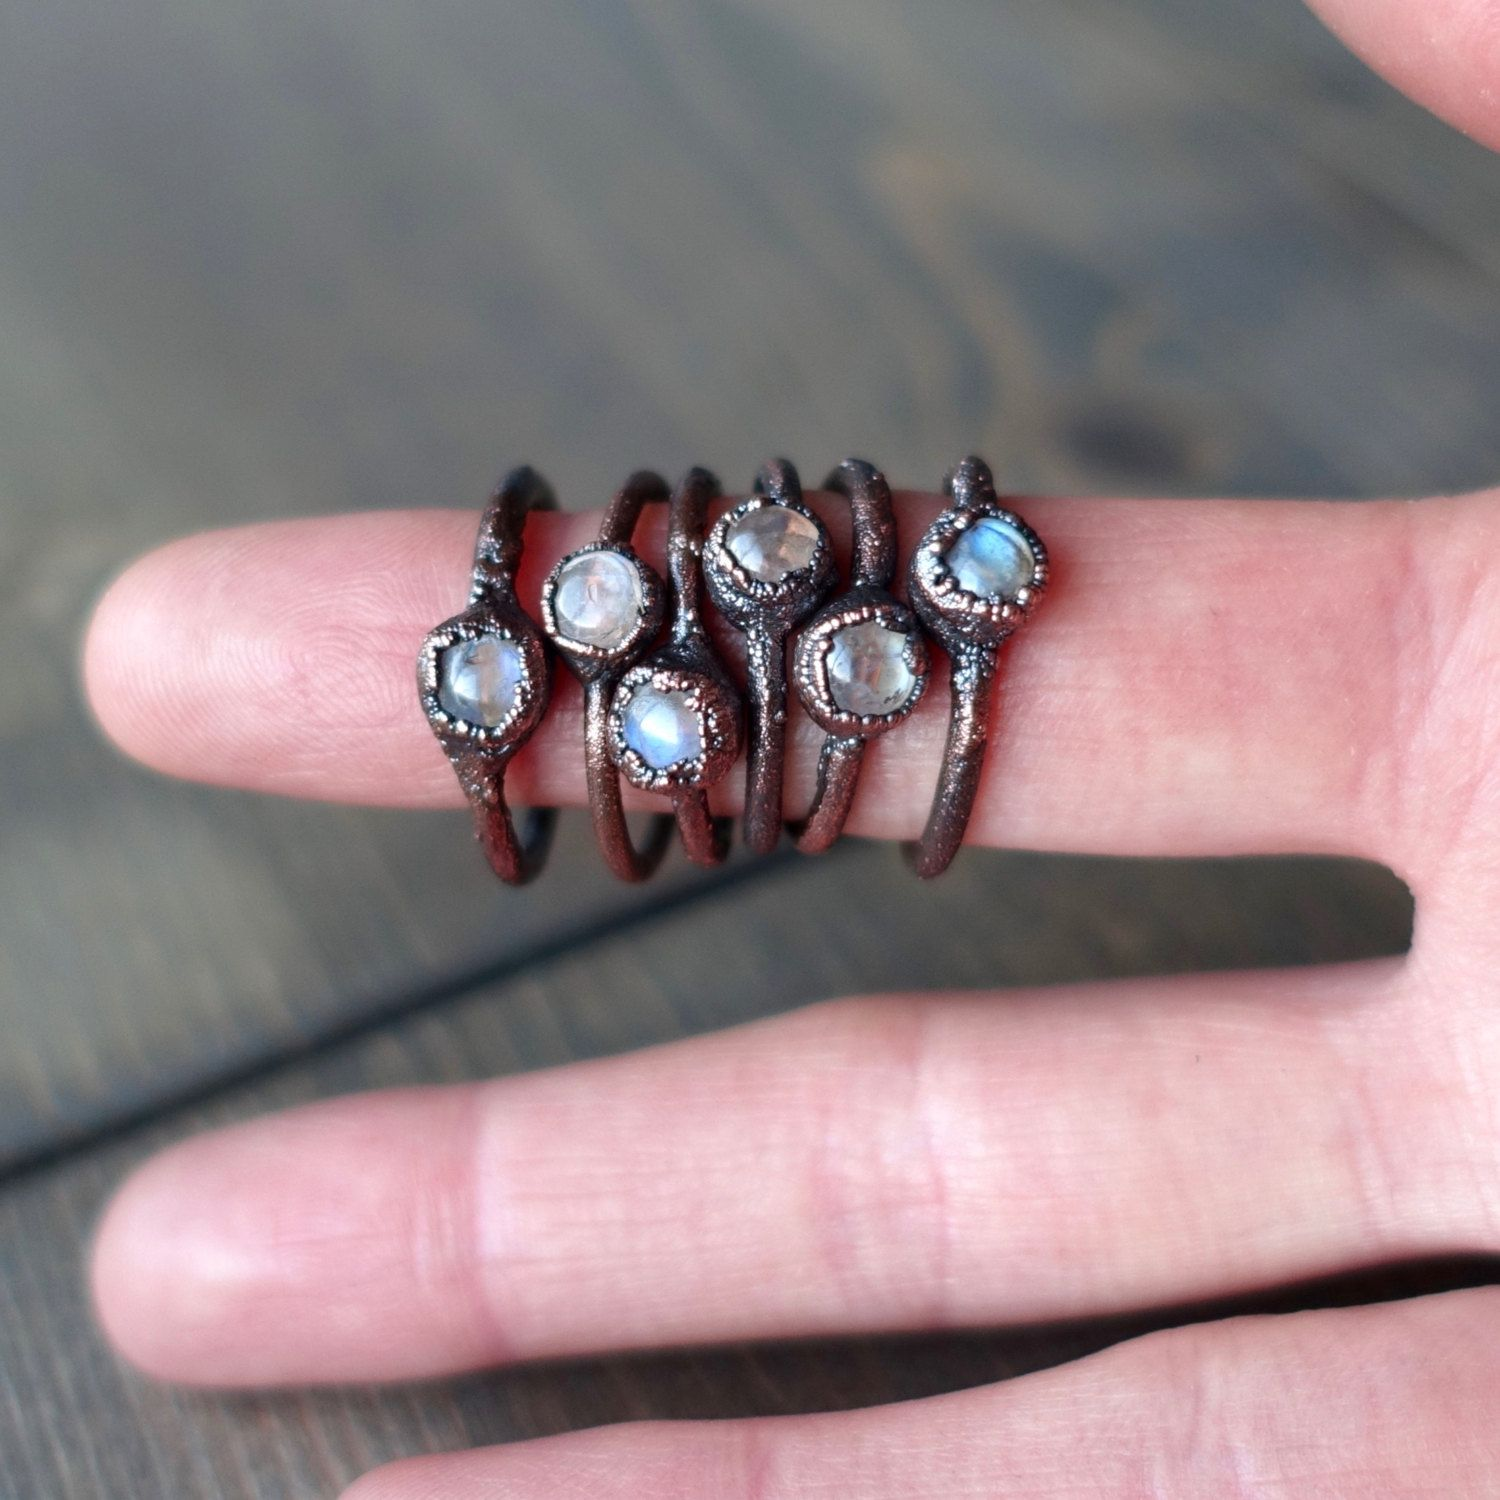 Moonstone rings | Stone ring | Moonstone jewelry | Electroformed ...